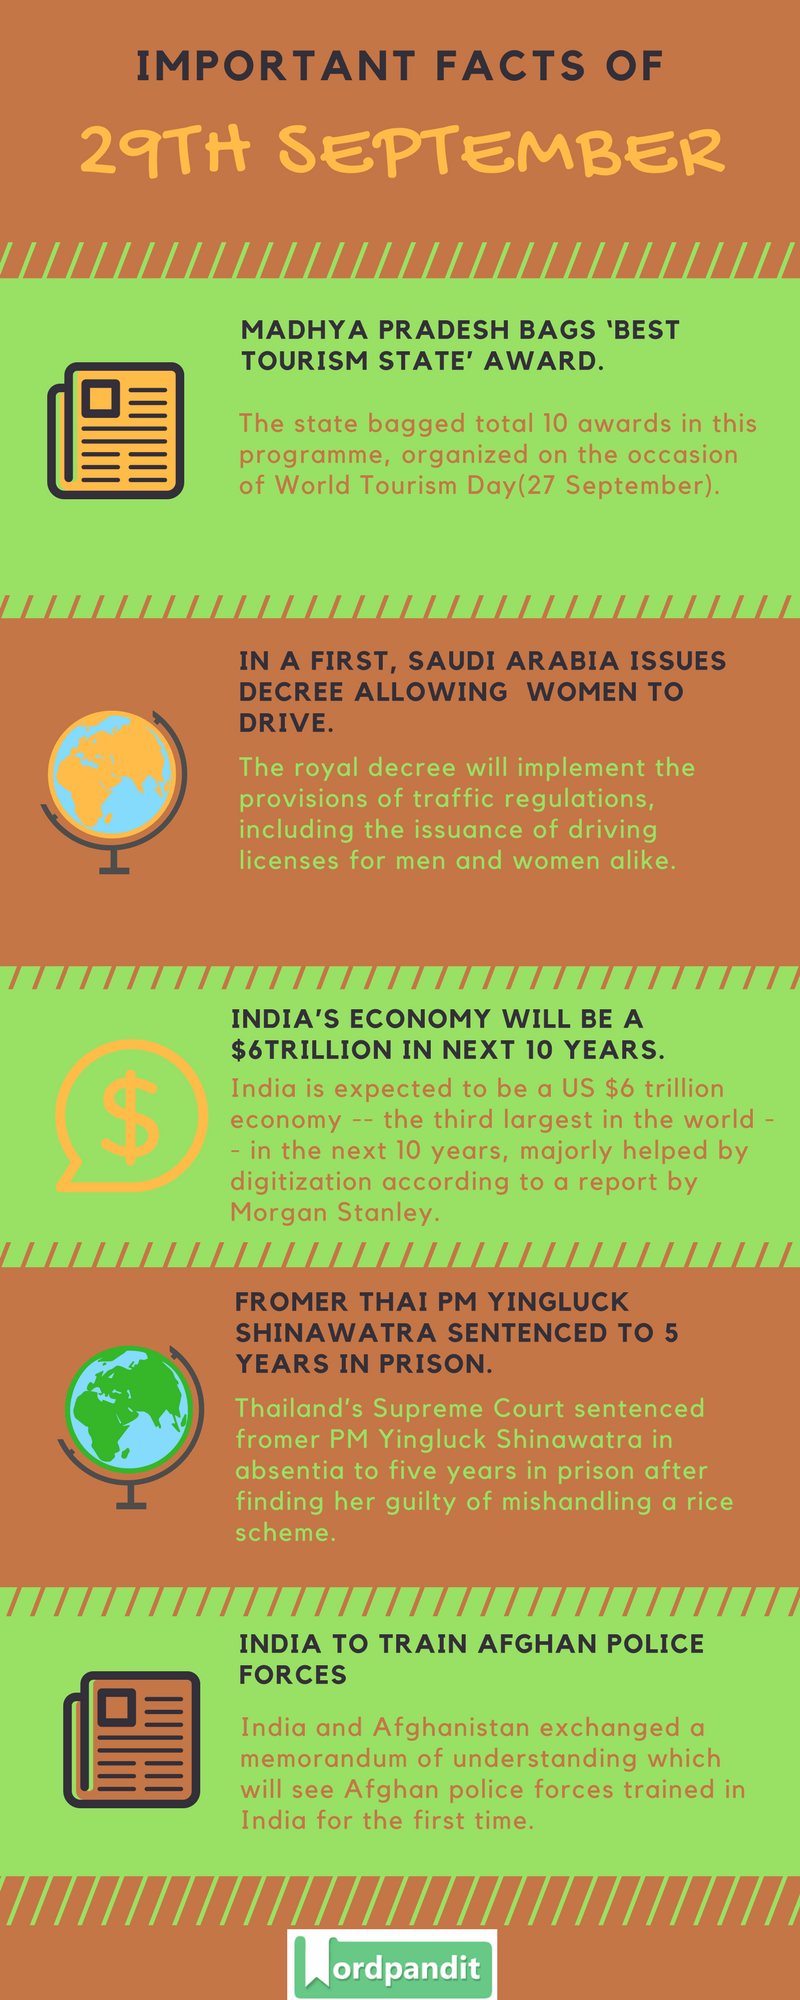 Daily-Current-Affairs-29-september-2017-Current-Affairs-Quiz-september-29-2017-Current-Affairs-Infographic